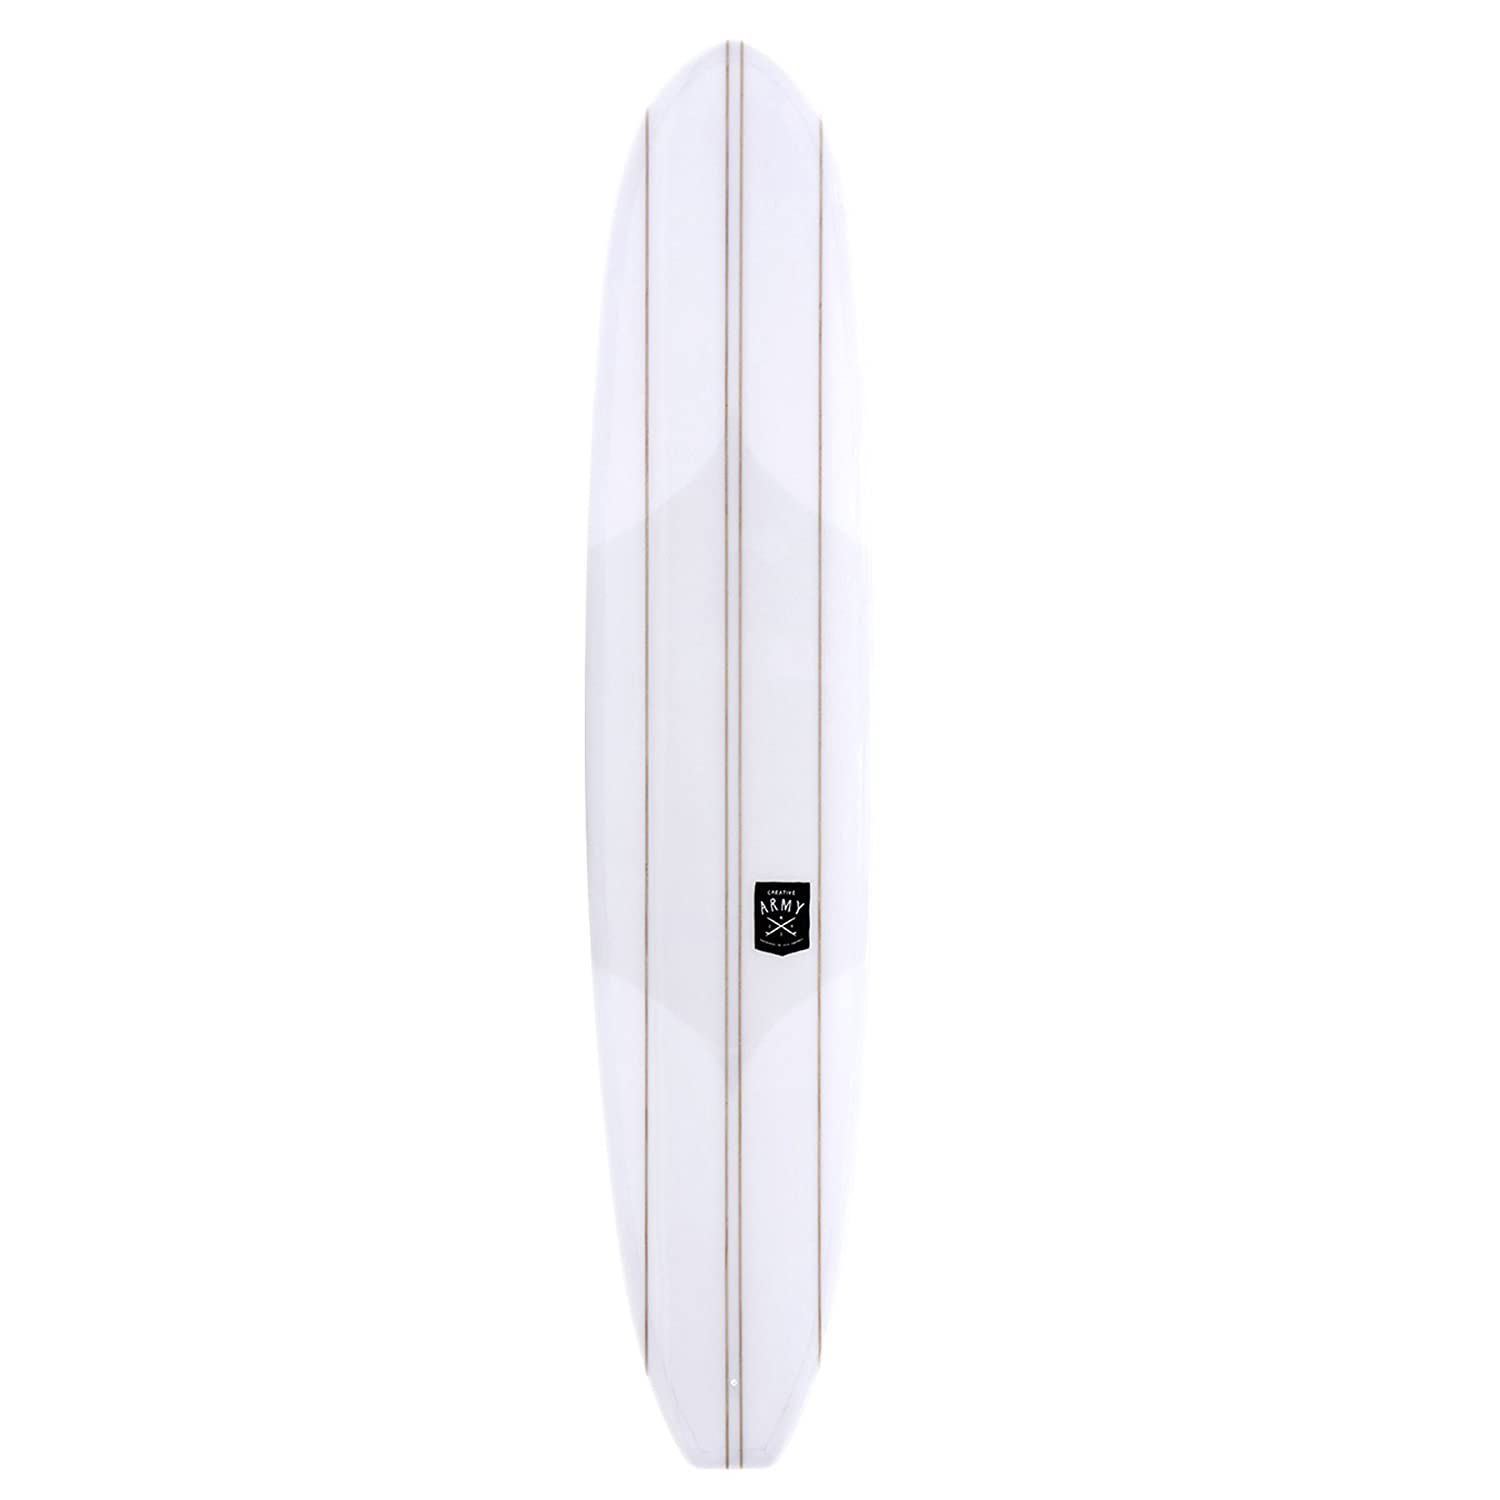 Creative Army Secabse - Tabla de surf de poliuretano (9ft2), transparente: Amazon.es: Deportes y aire libre